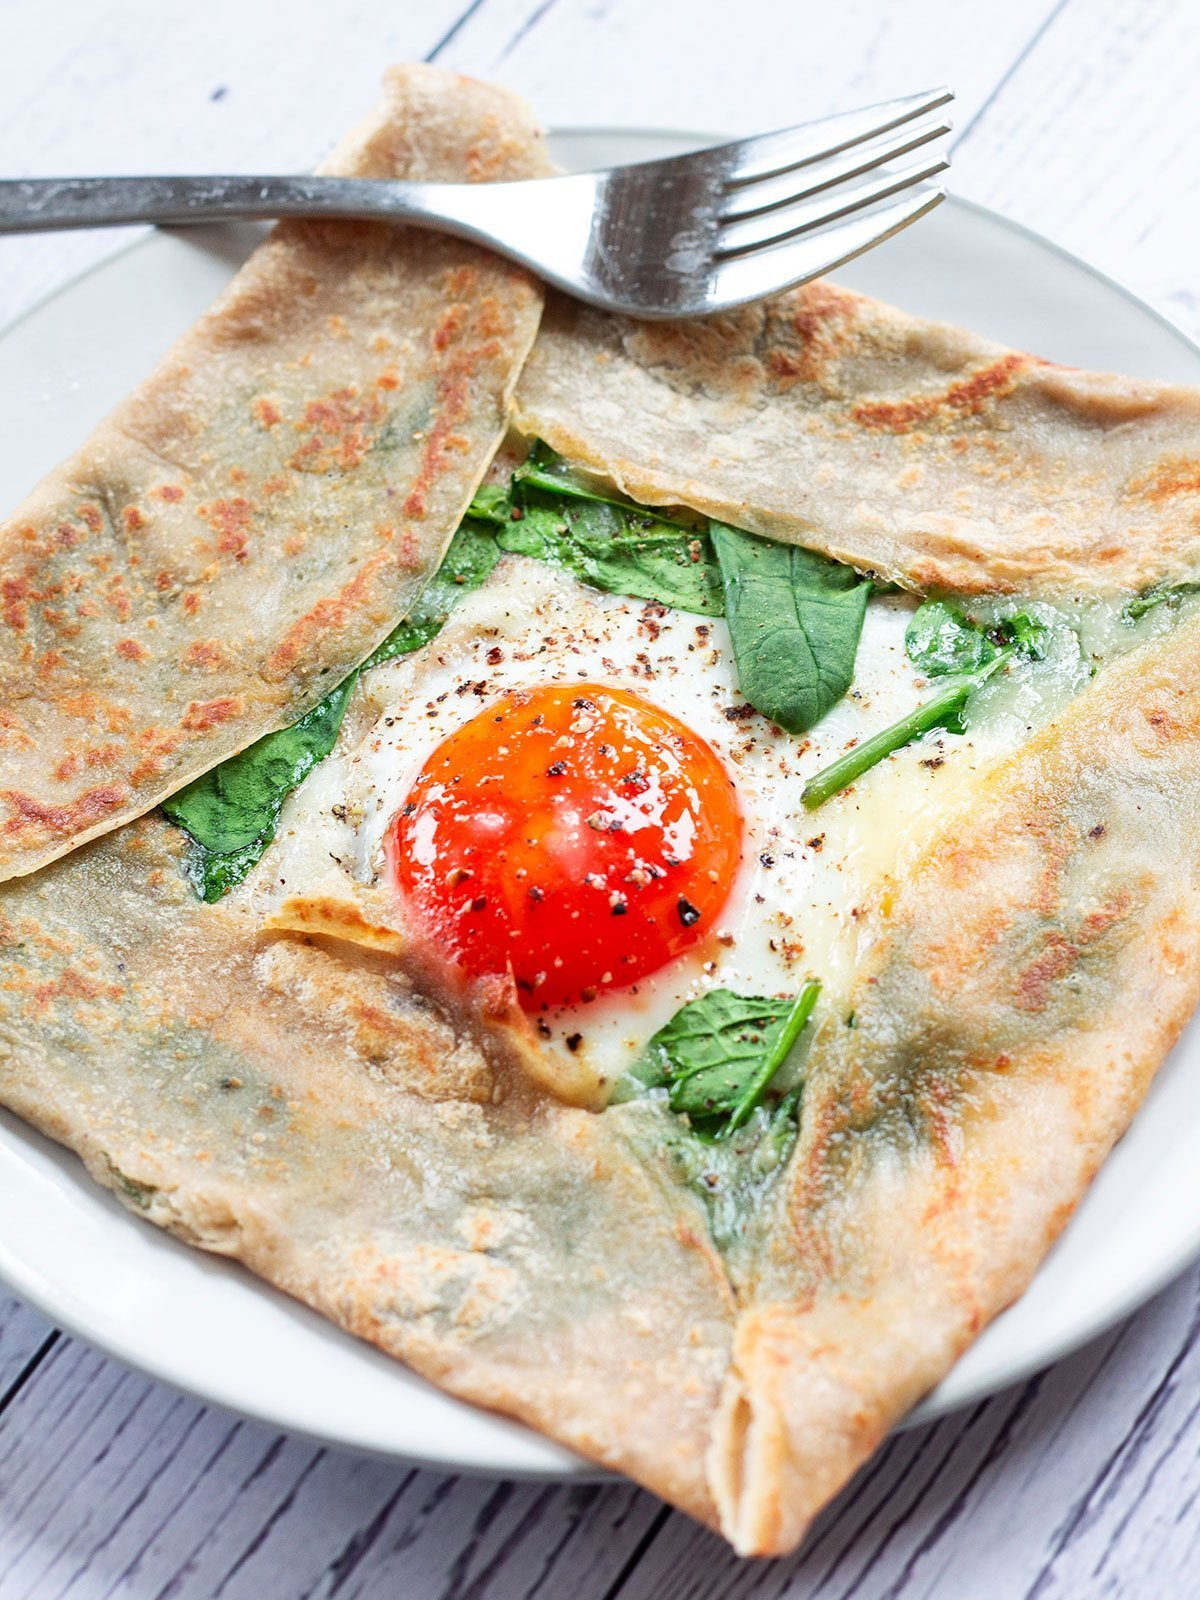 French buckwheat crepe on a plate